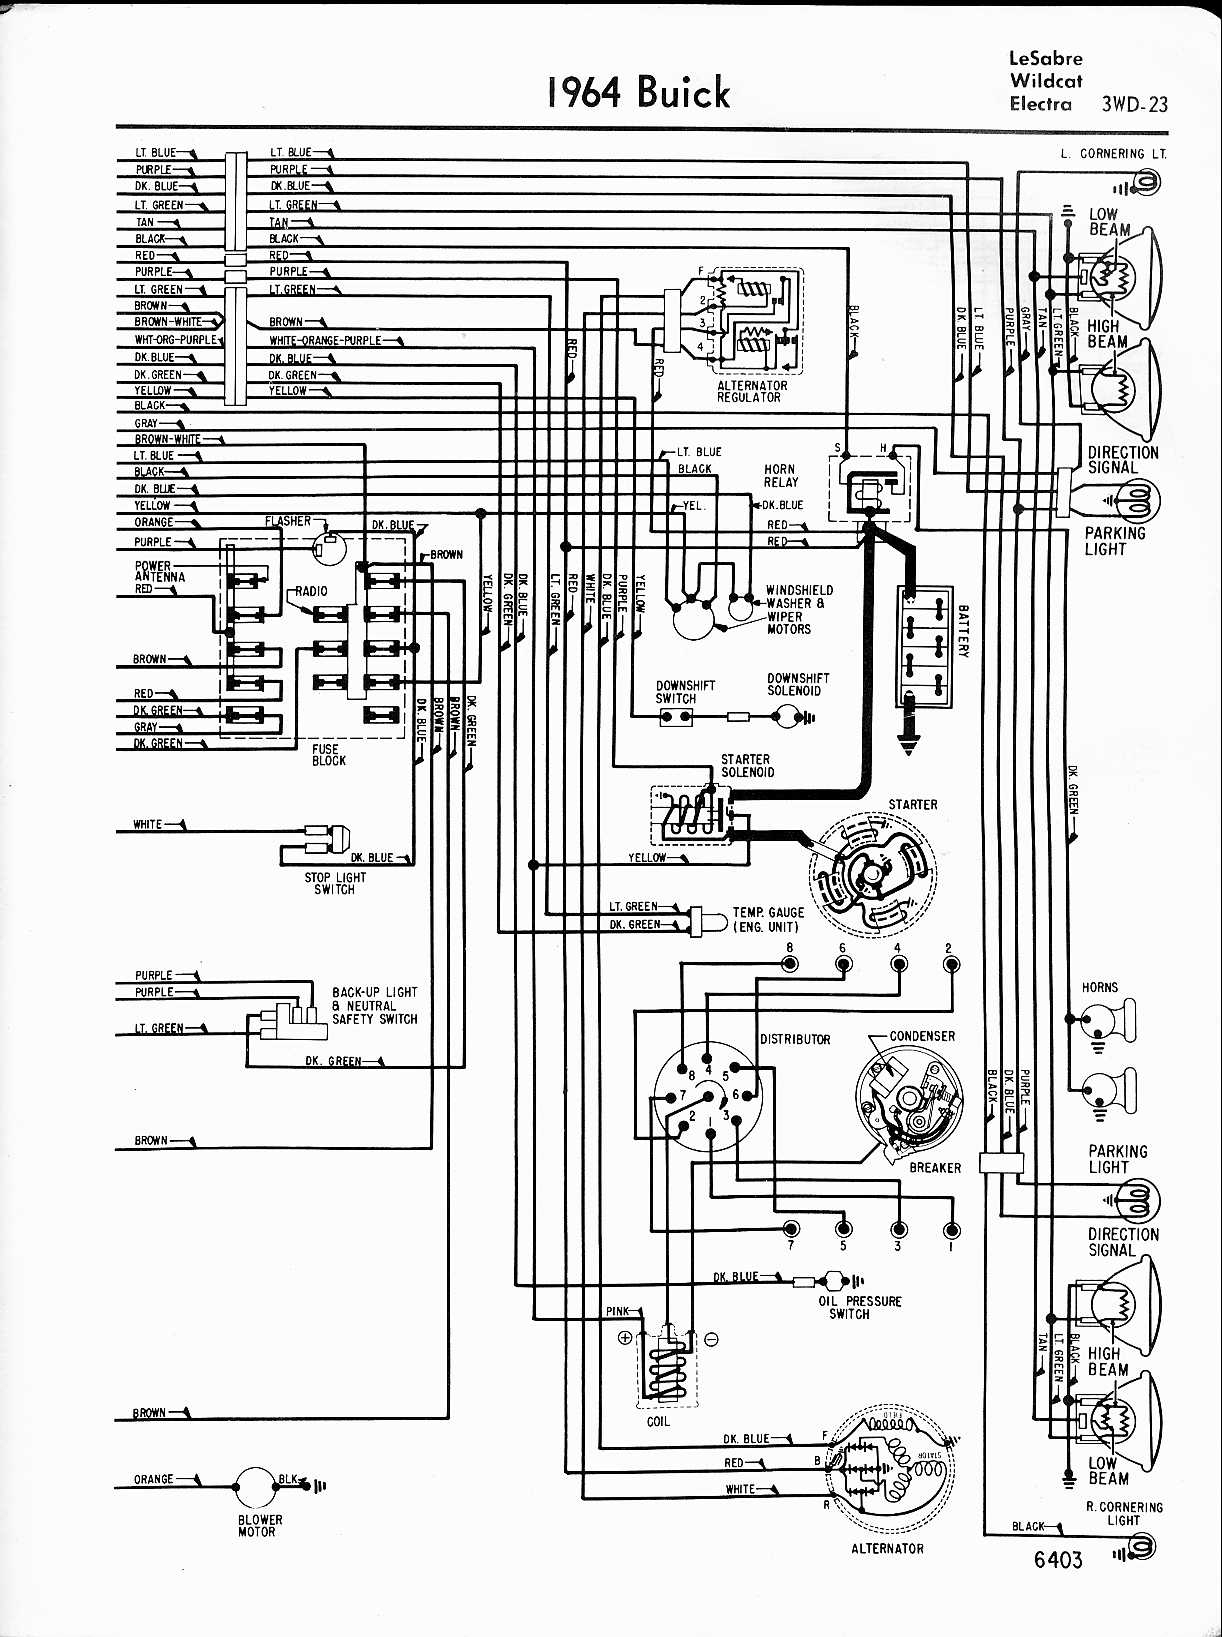 tth_407] 1993 buick roadmaster engine diagram wiring schematic   diode-home wiring  diagram total   diode-home.voilatour.fr  voila tour